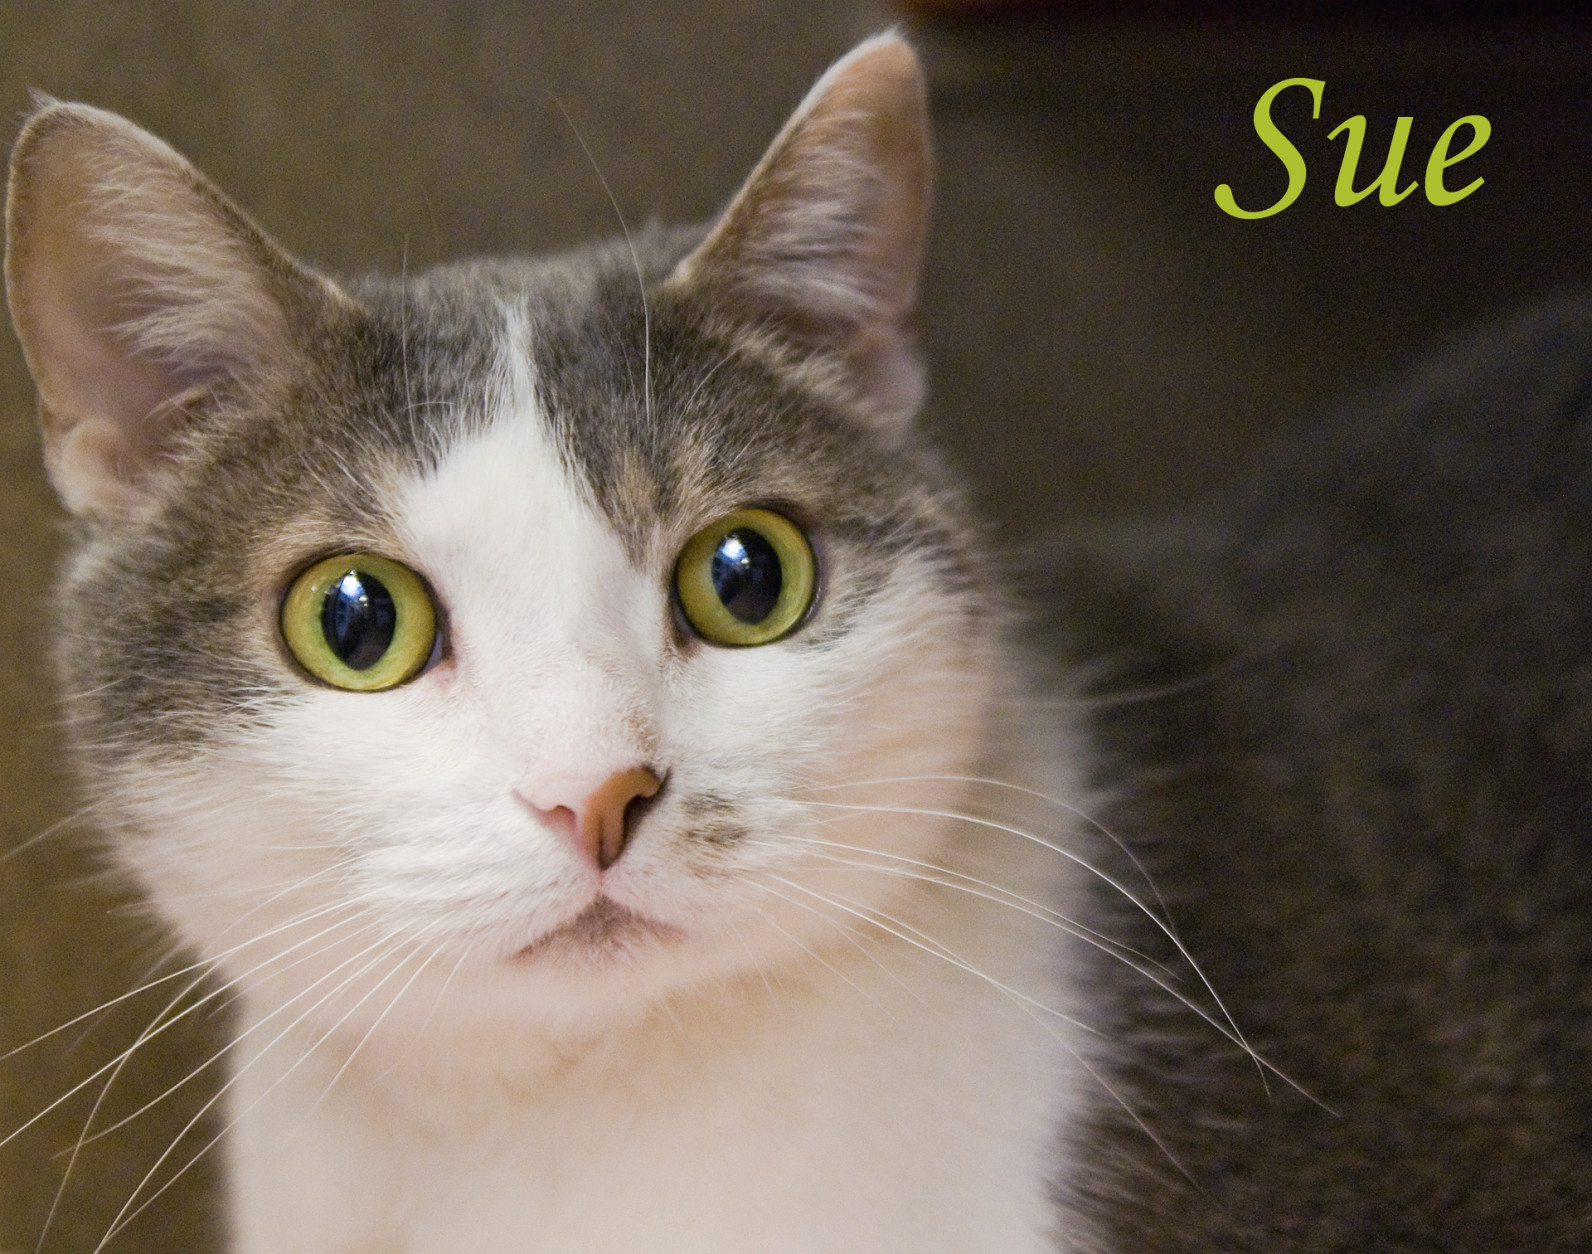 Pet of the Week: Sue  For the week of April 25  Sweet, sad Sue is pining for her human companion, who passed away not long ago. After many years as a beloved feline friend, this 11-year-old girl is understandably finding shelter life stressful and confusing. She really needs a quiet home where she can spend her golden years in comfort and rediscover the joys of being someone's true love. We're betting she'll return the favor with years of affection and companionship. If you're interested in bringing joy to Sue's life, stop by the Oglethorpe Adoption Center of the Washington Humane Society/Washington Animal Rescue League, at 71 Oglethorpe St. in Northwest D.C.  Photo:  Washington Humane Society/Washington Animal Rescue League